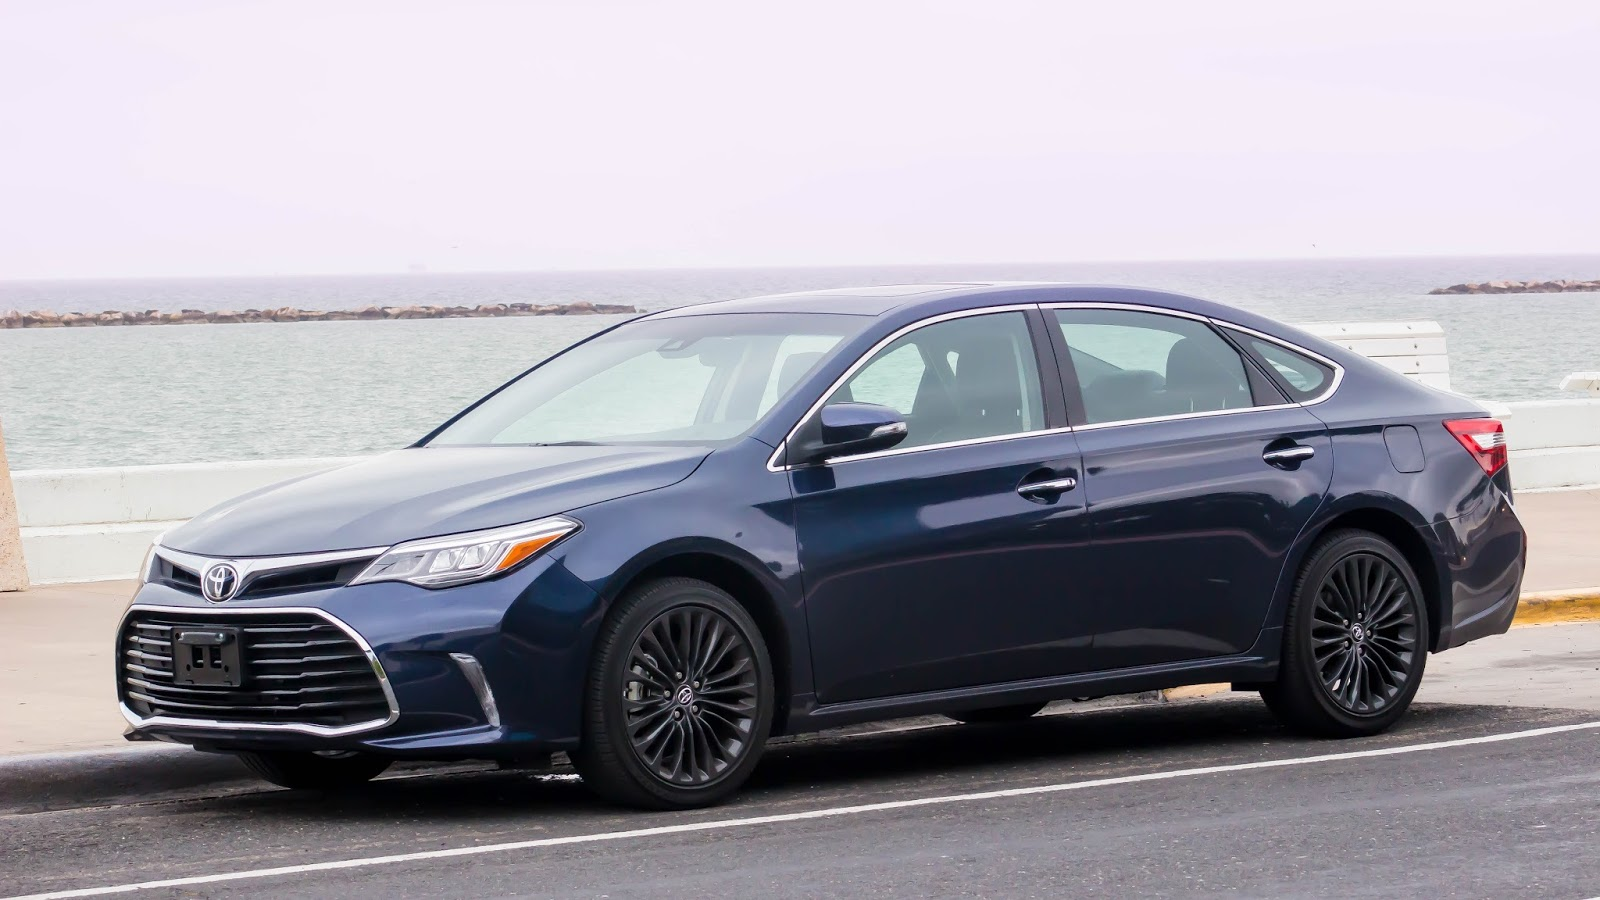 Toyota Avalon Touring trip